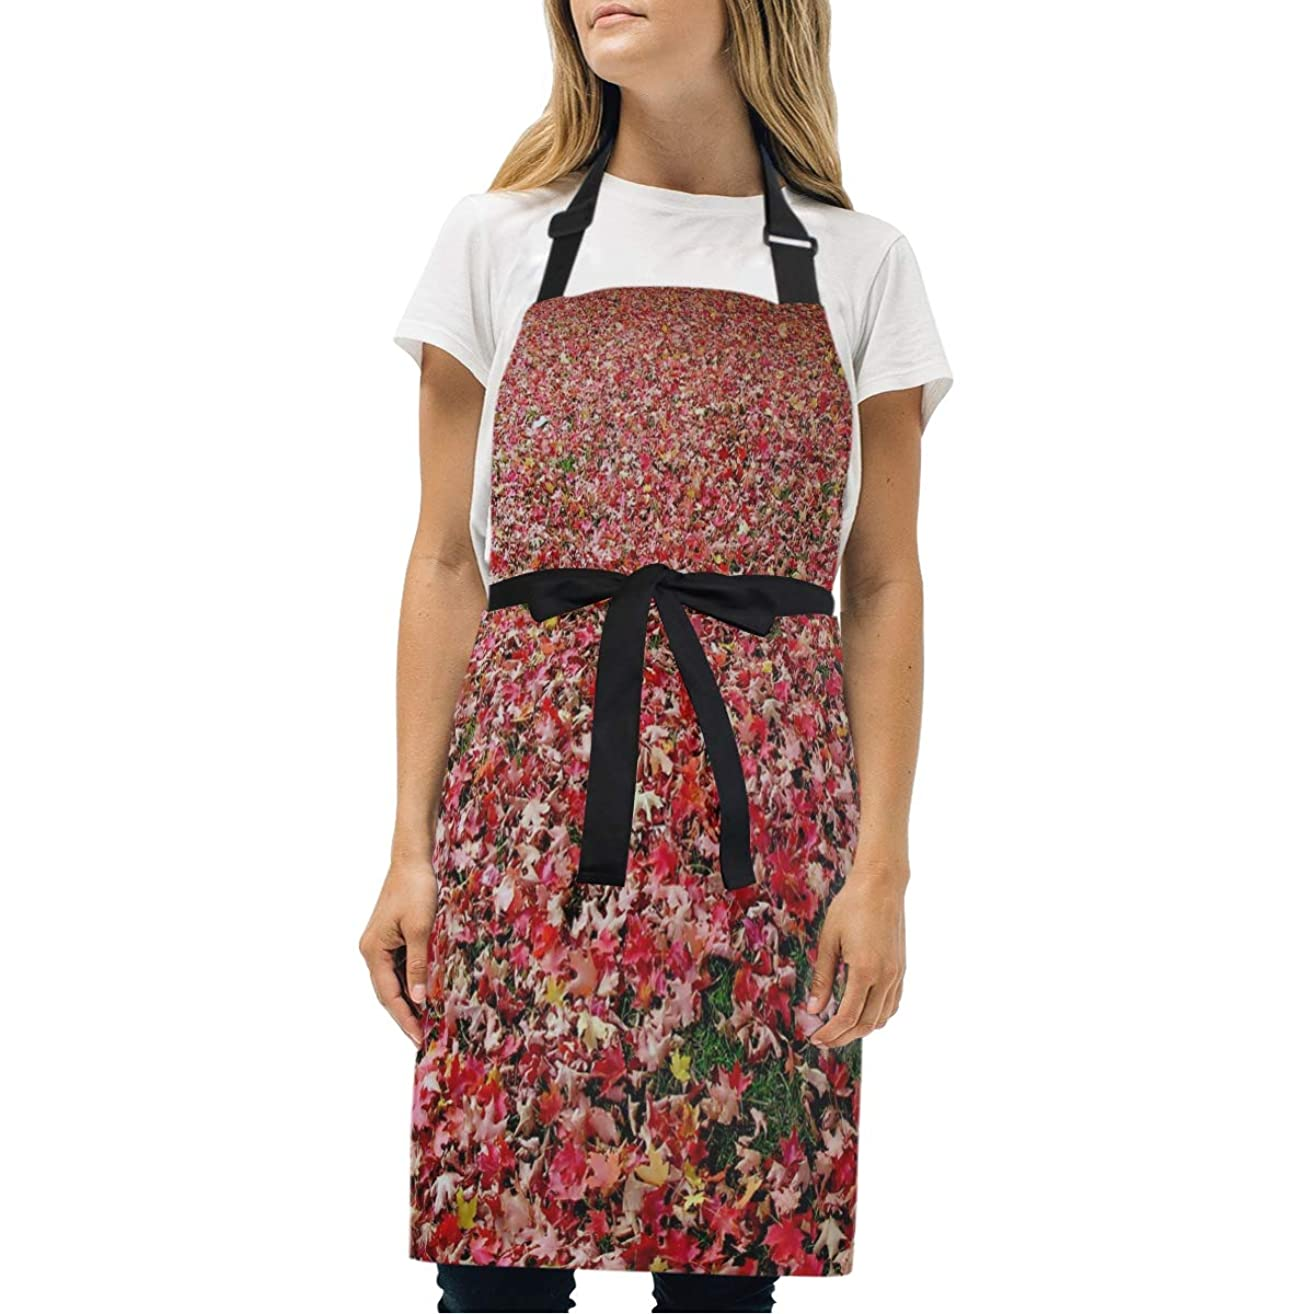 HJudge Womens Aprons Most Beautiful Autumn Leaves for You Kitchen Bib Aprons with Pockets Adjustable Buckle on Neck